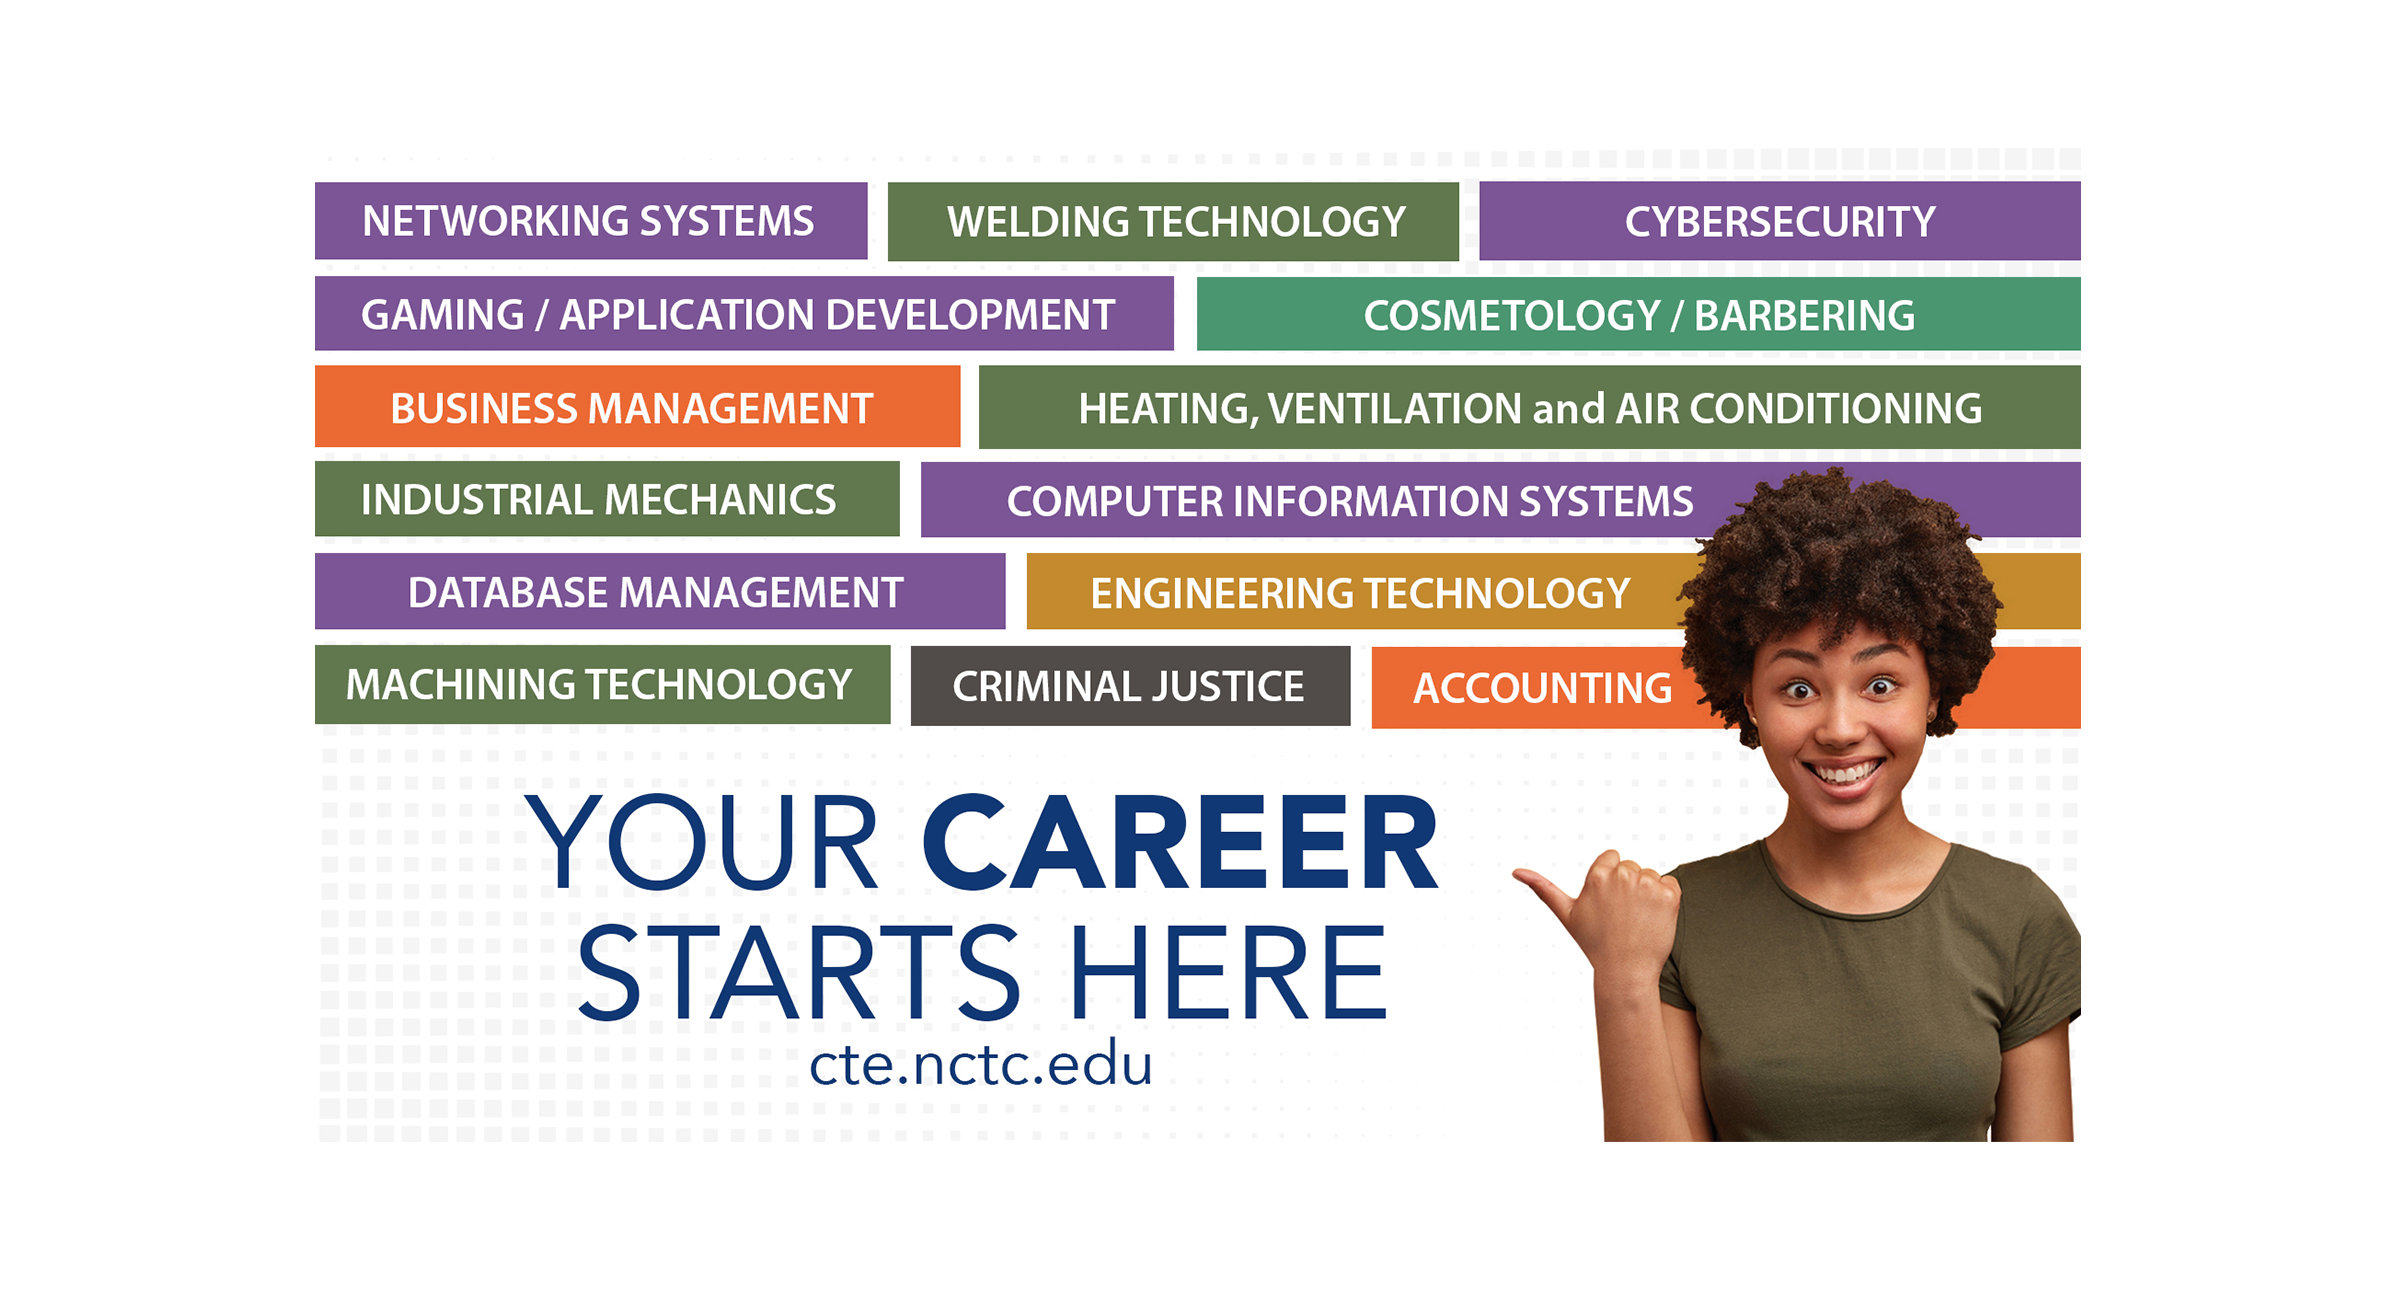 Your Career Starts Here